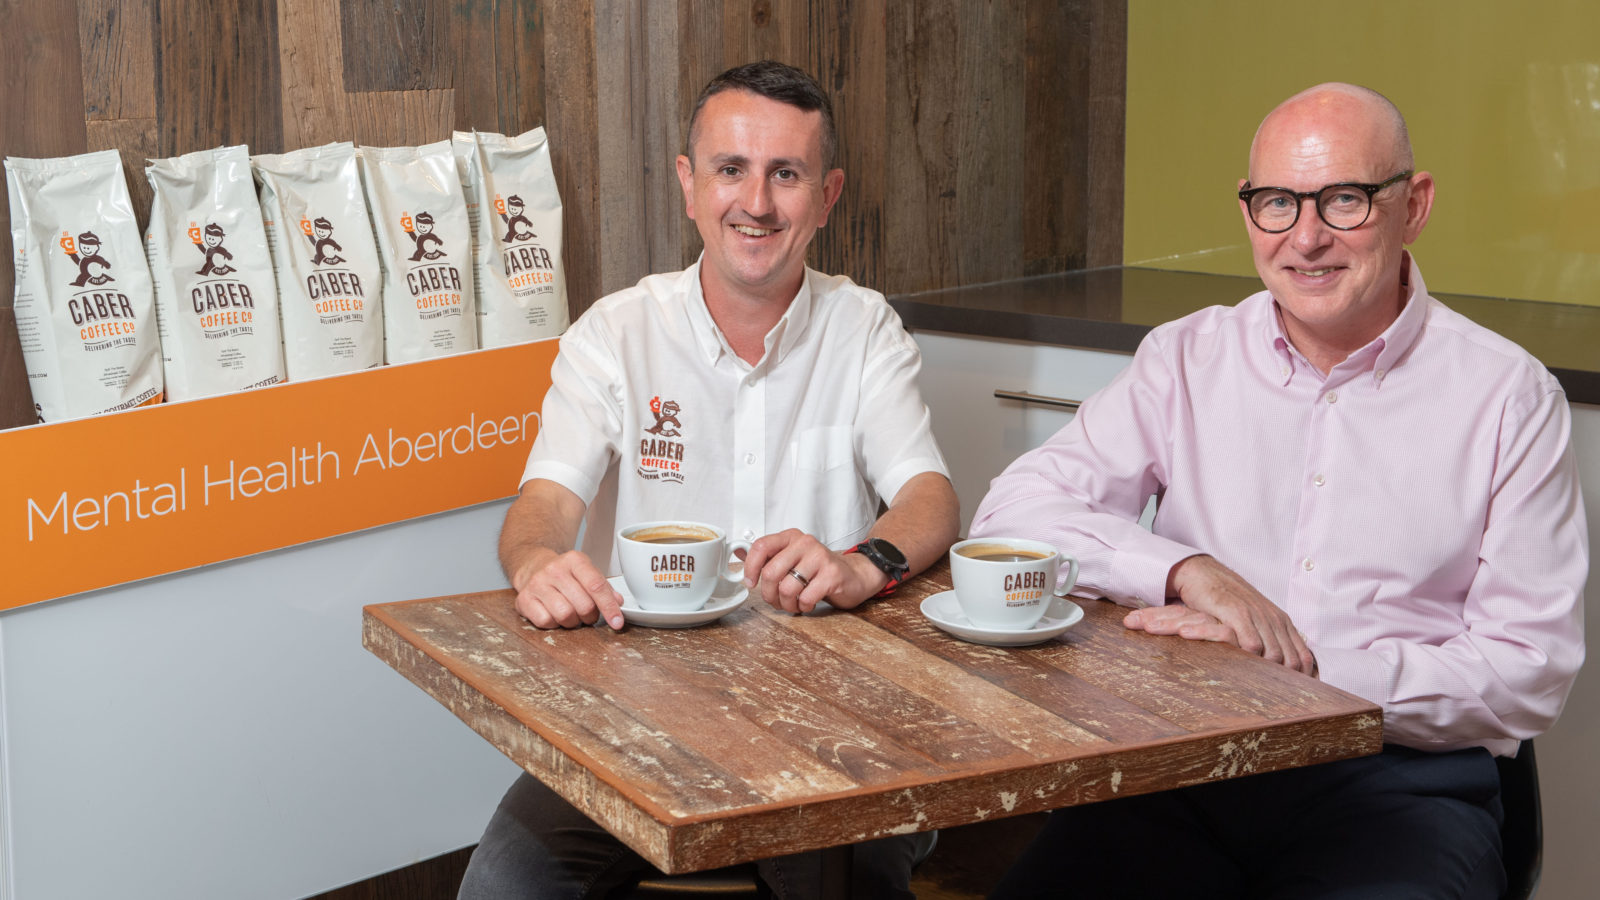 Caber Coffee encourages coffee drinkers to Spill the Beans